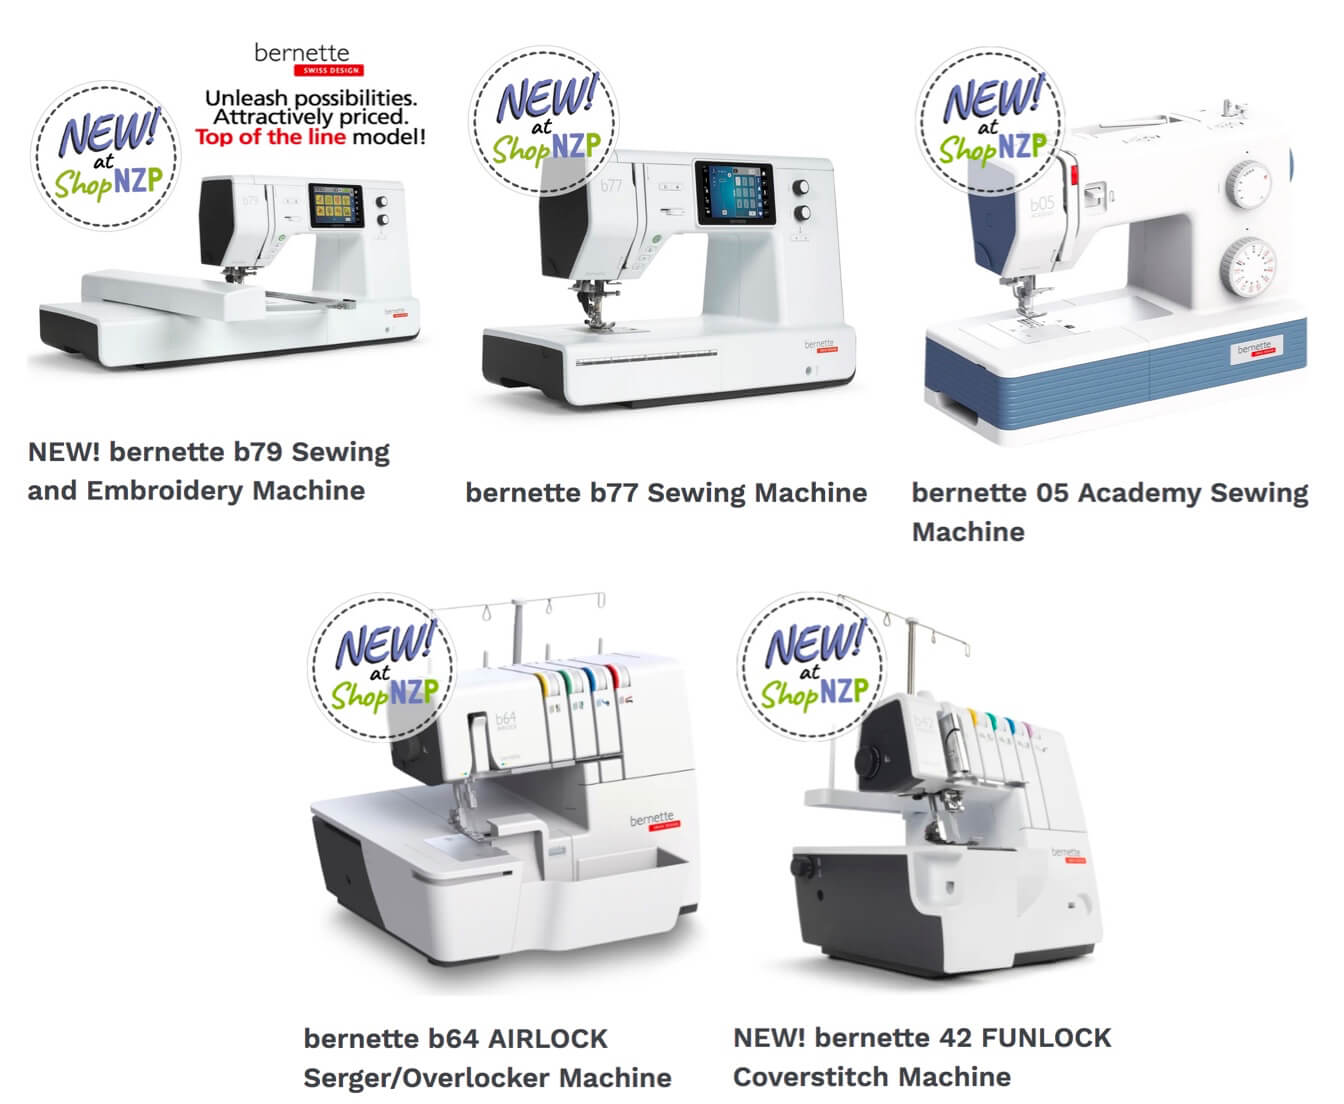 Shop NEW! bernette Sewing, Sewing & Embroidery, Serger/Overlocker and Coverstitch Machines at ShopNZP.com